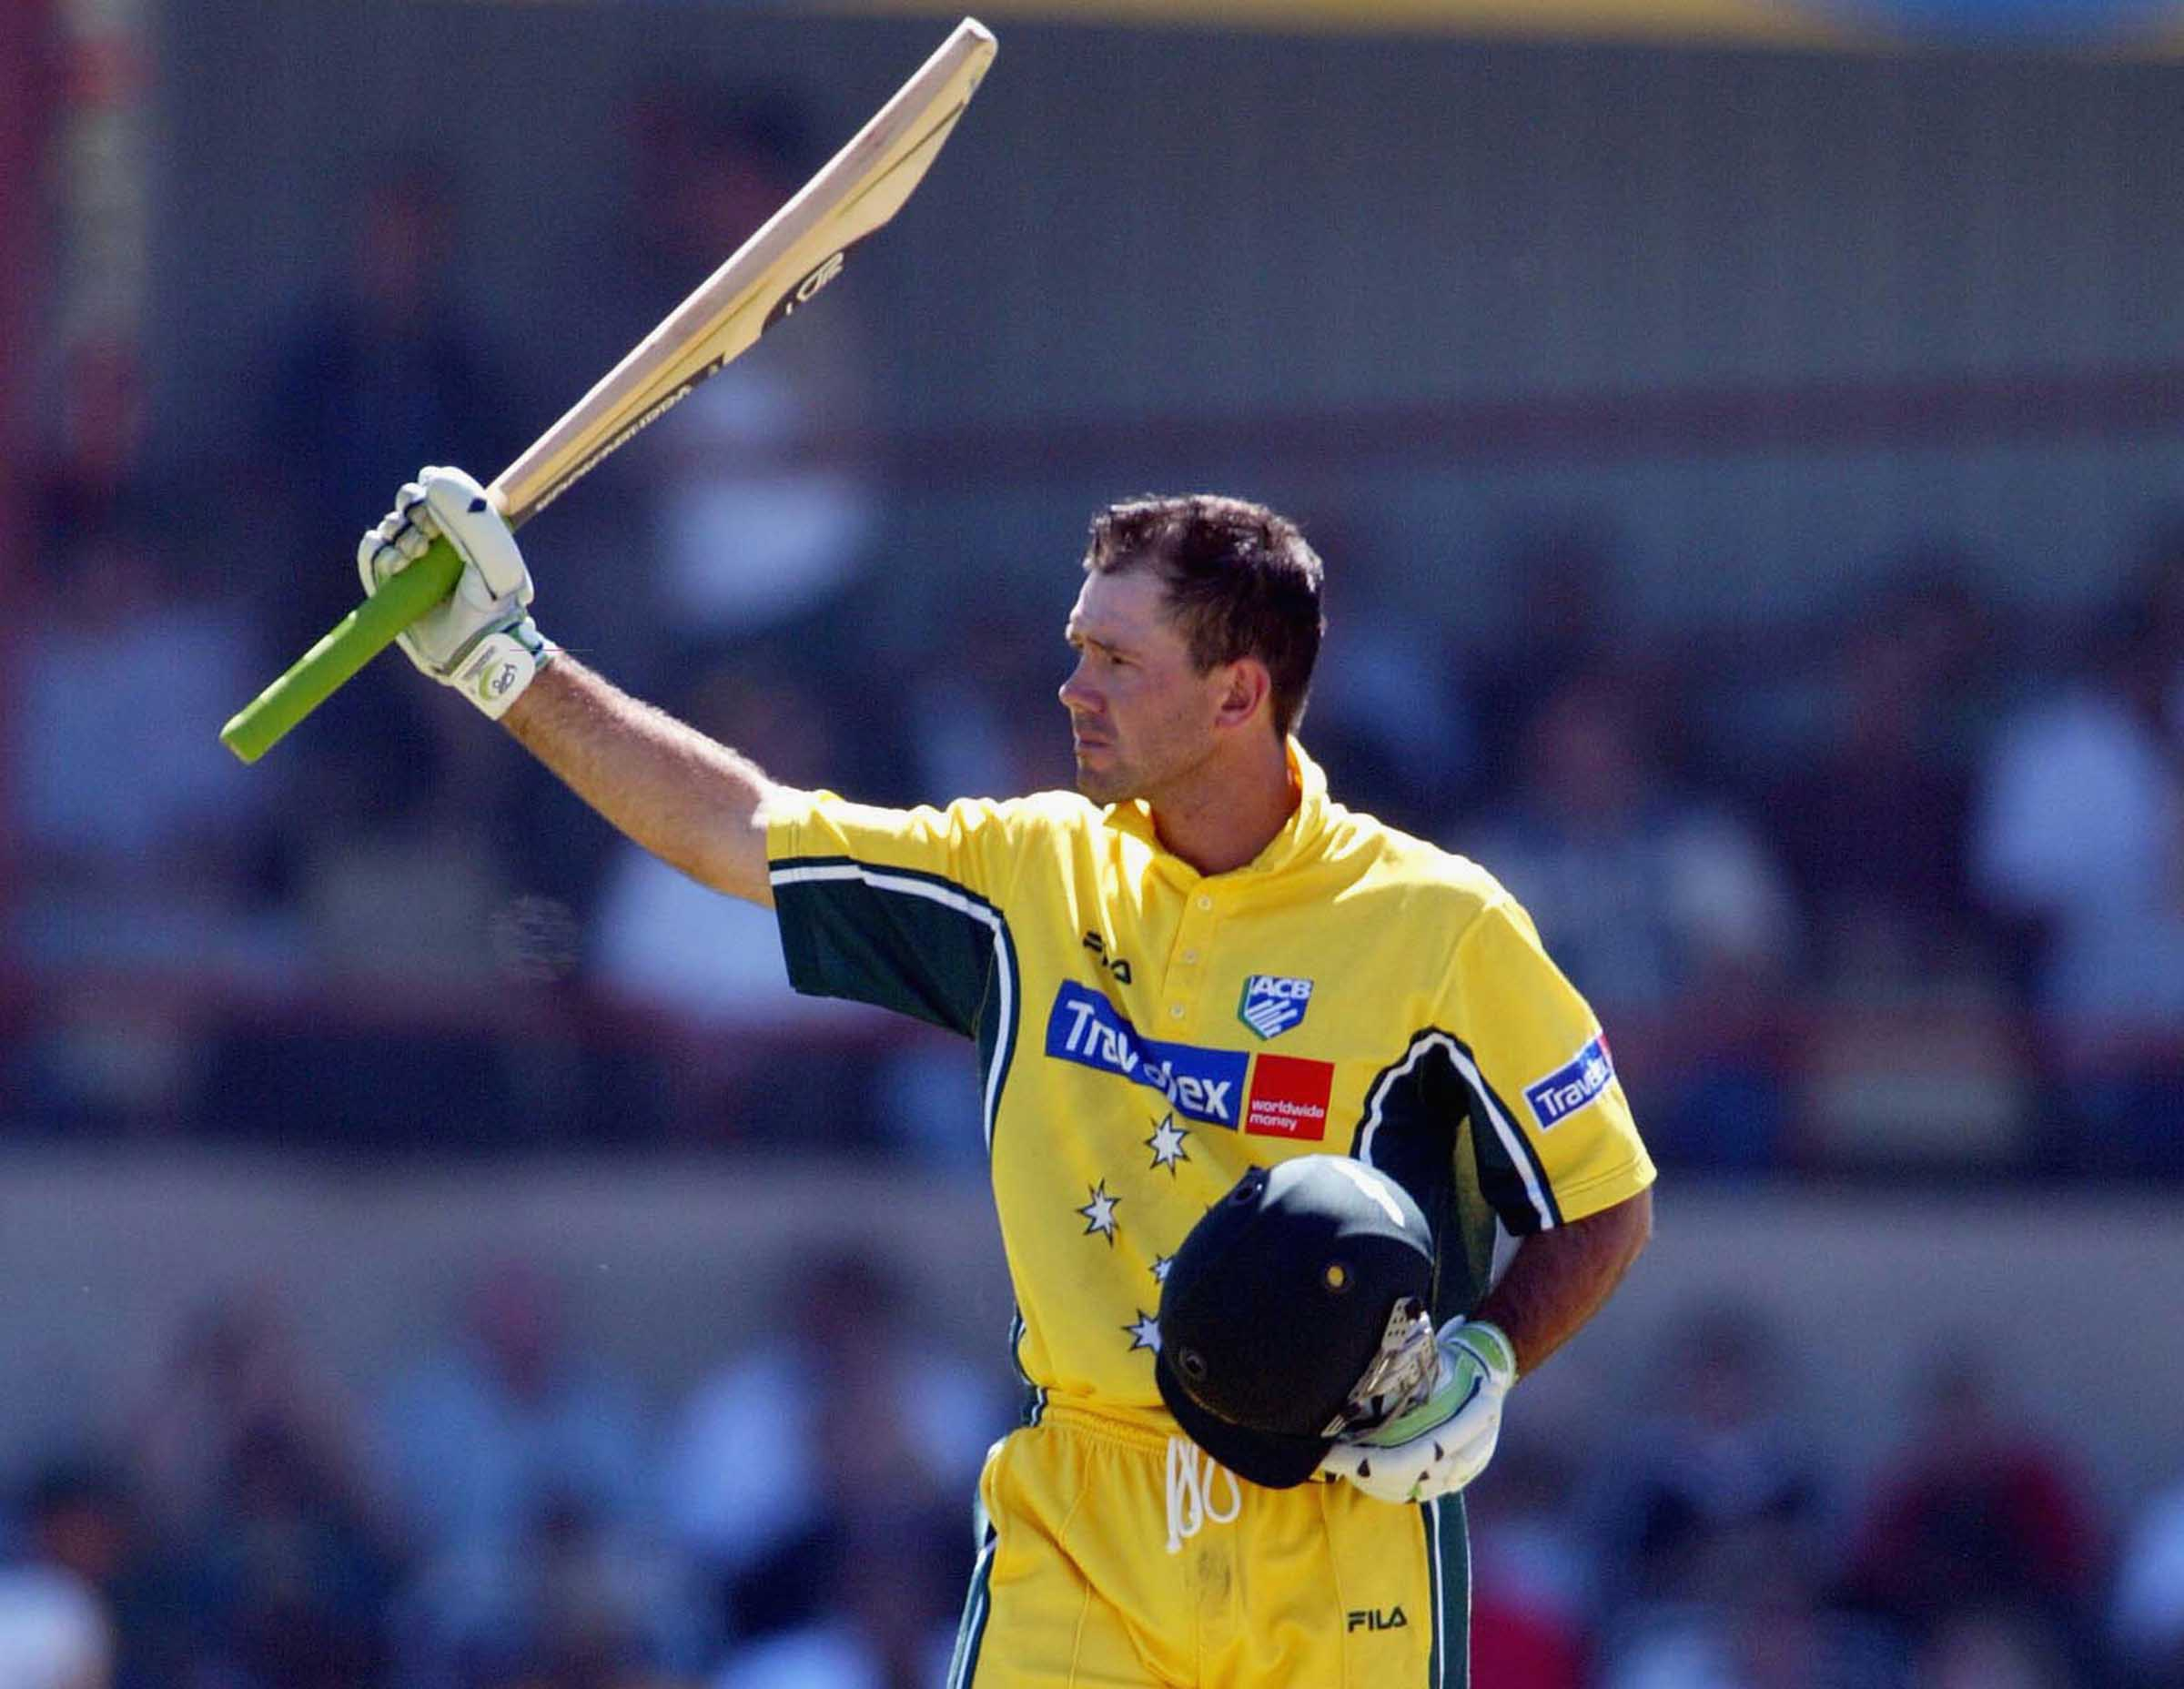 Ponting salutes with his maiden hundred as ODI captain // Getty